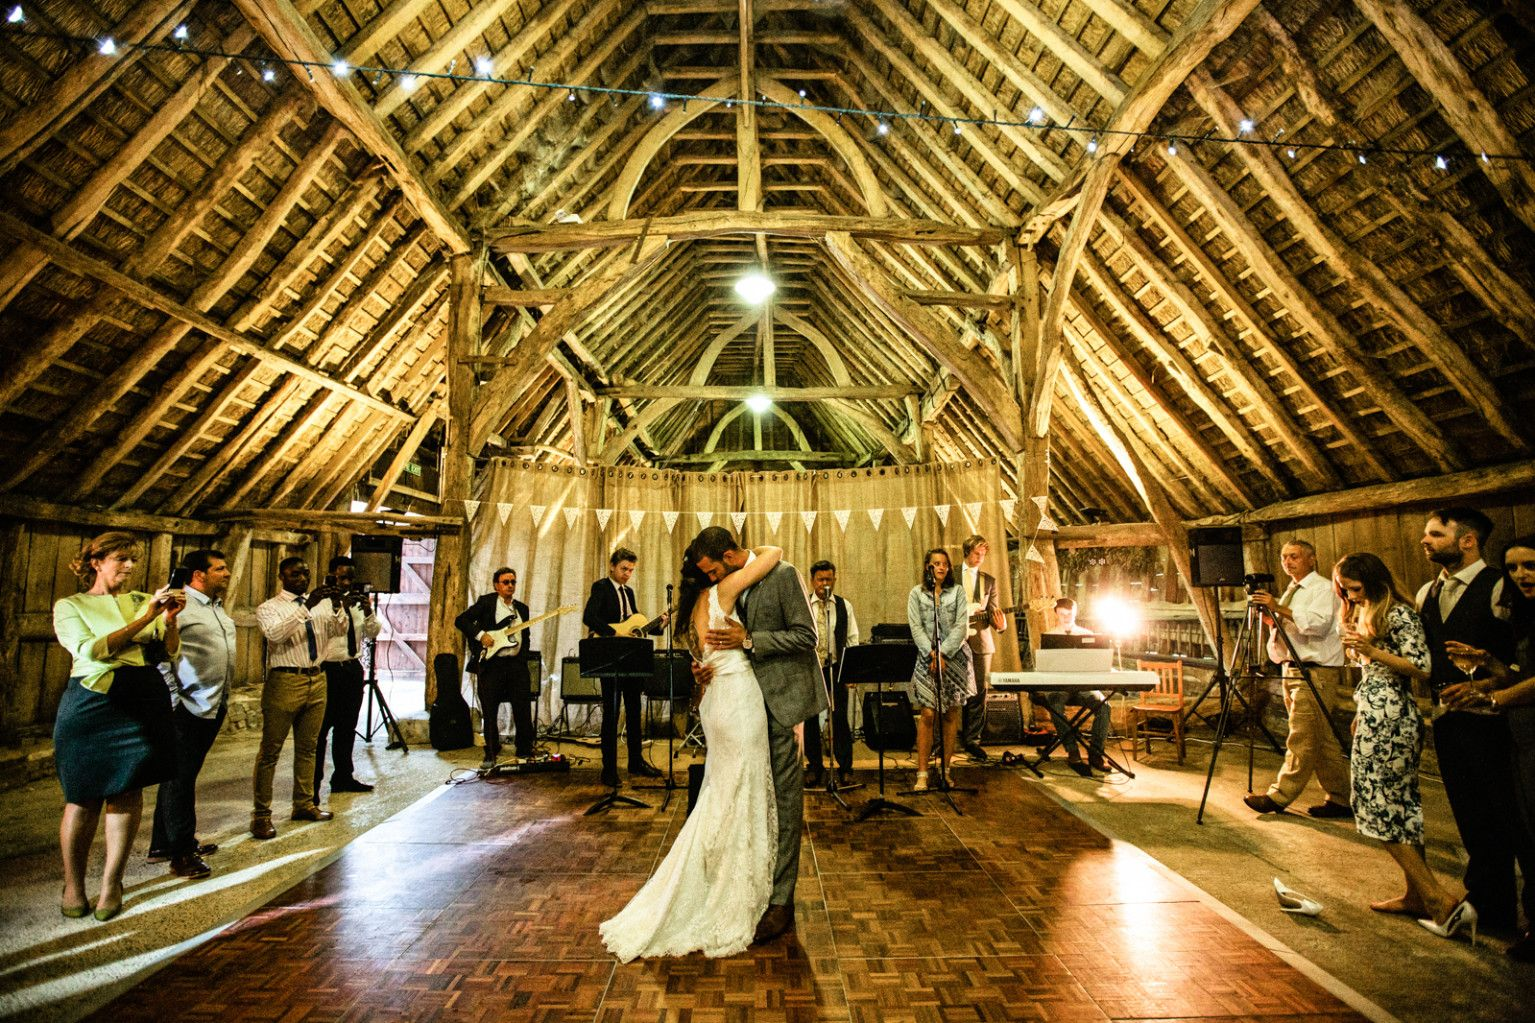 7 Facts About Wedding Venues With Barns That Will Blow Your Mind